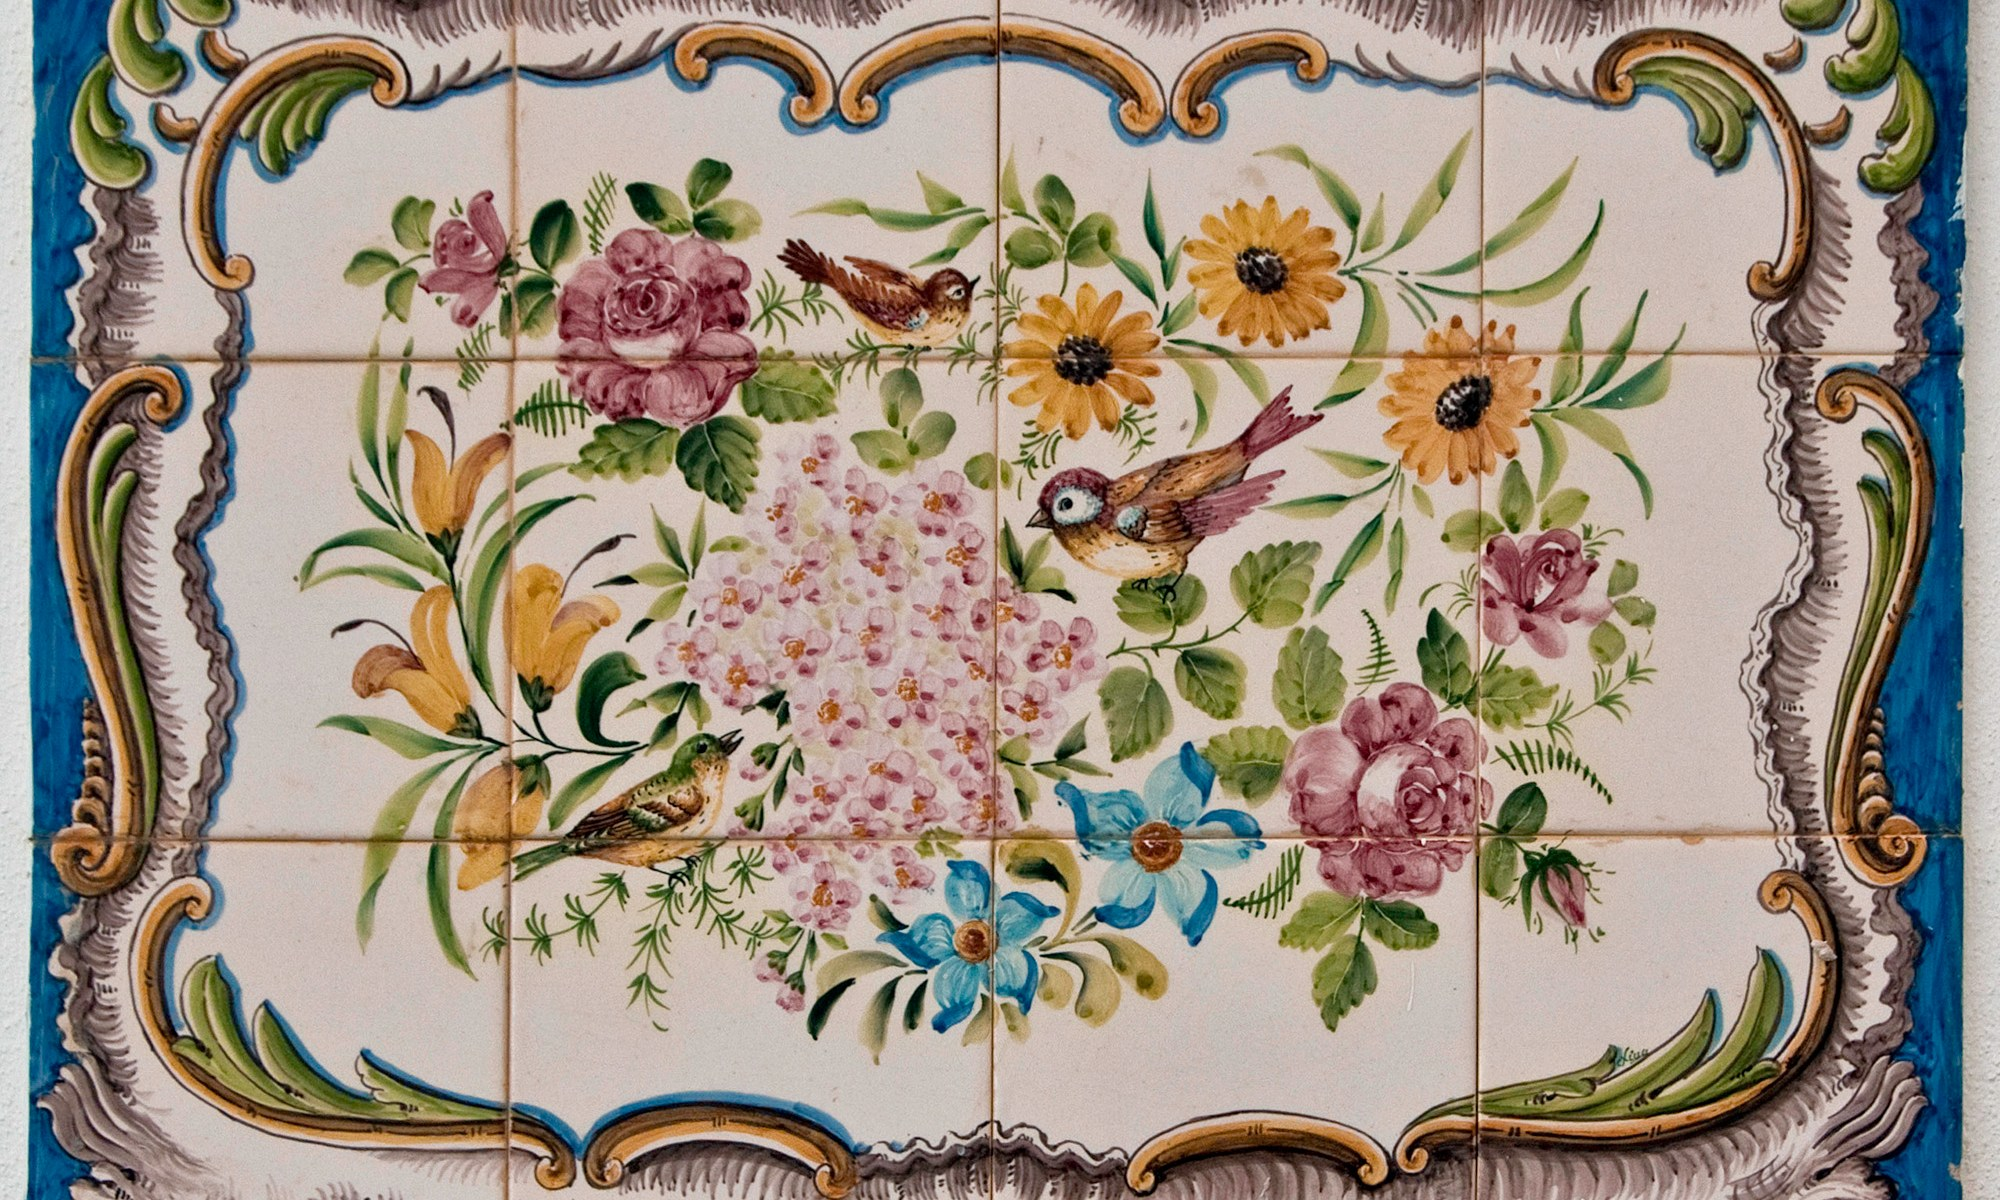 Hand Painted Tiles from Portugal